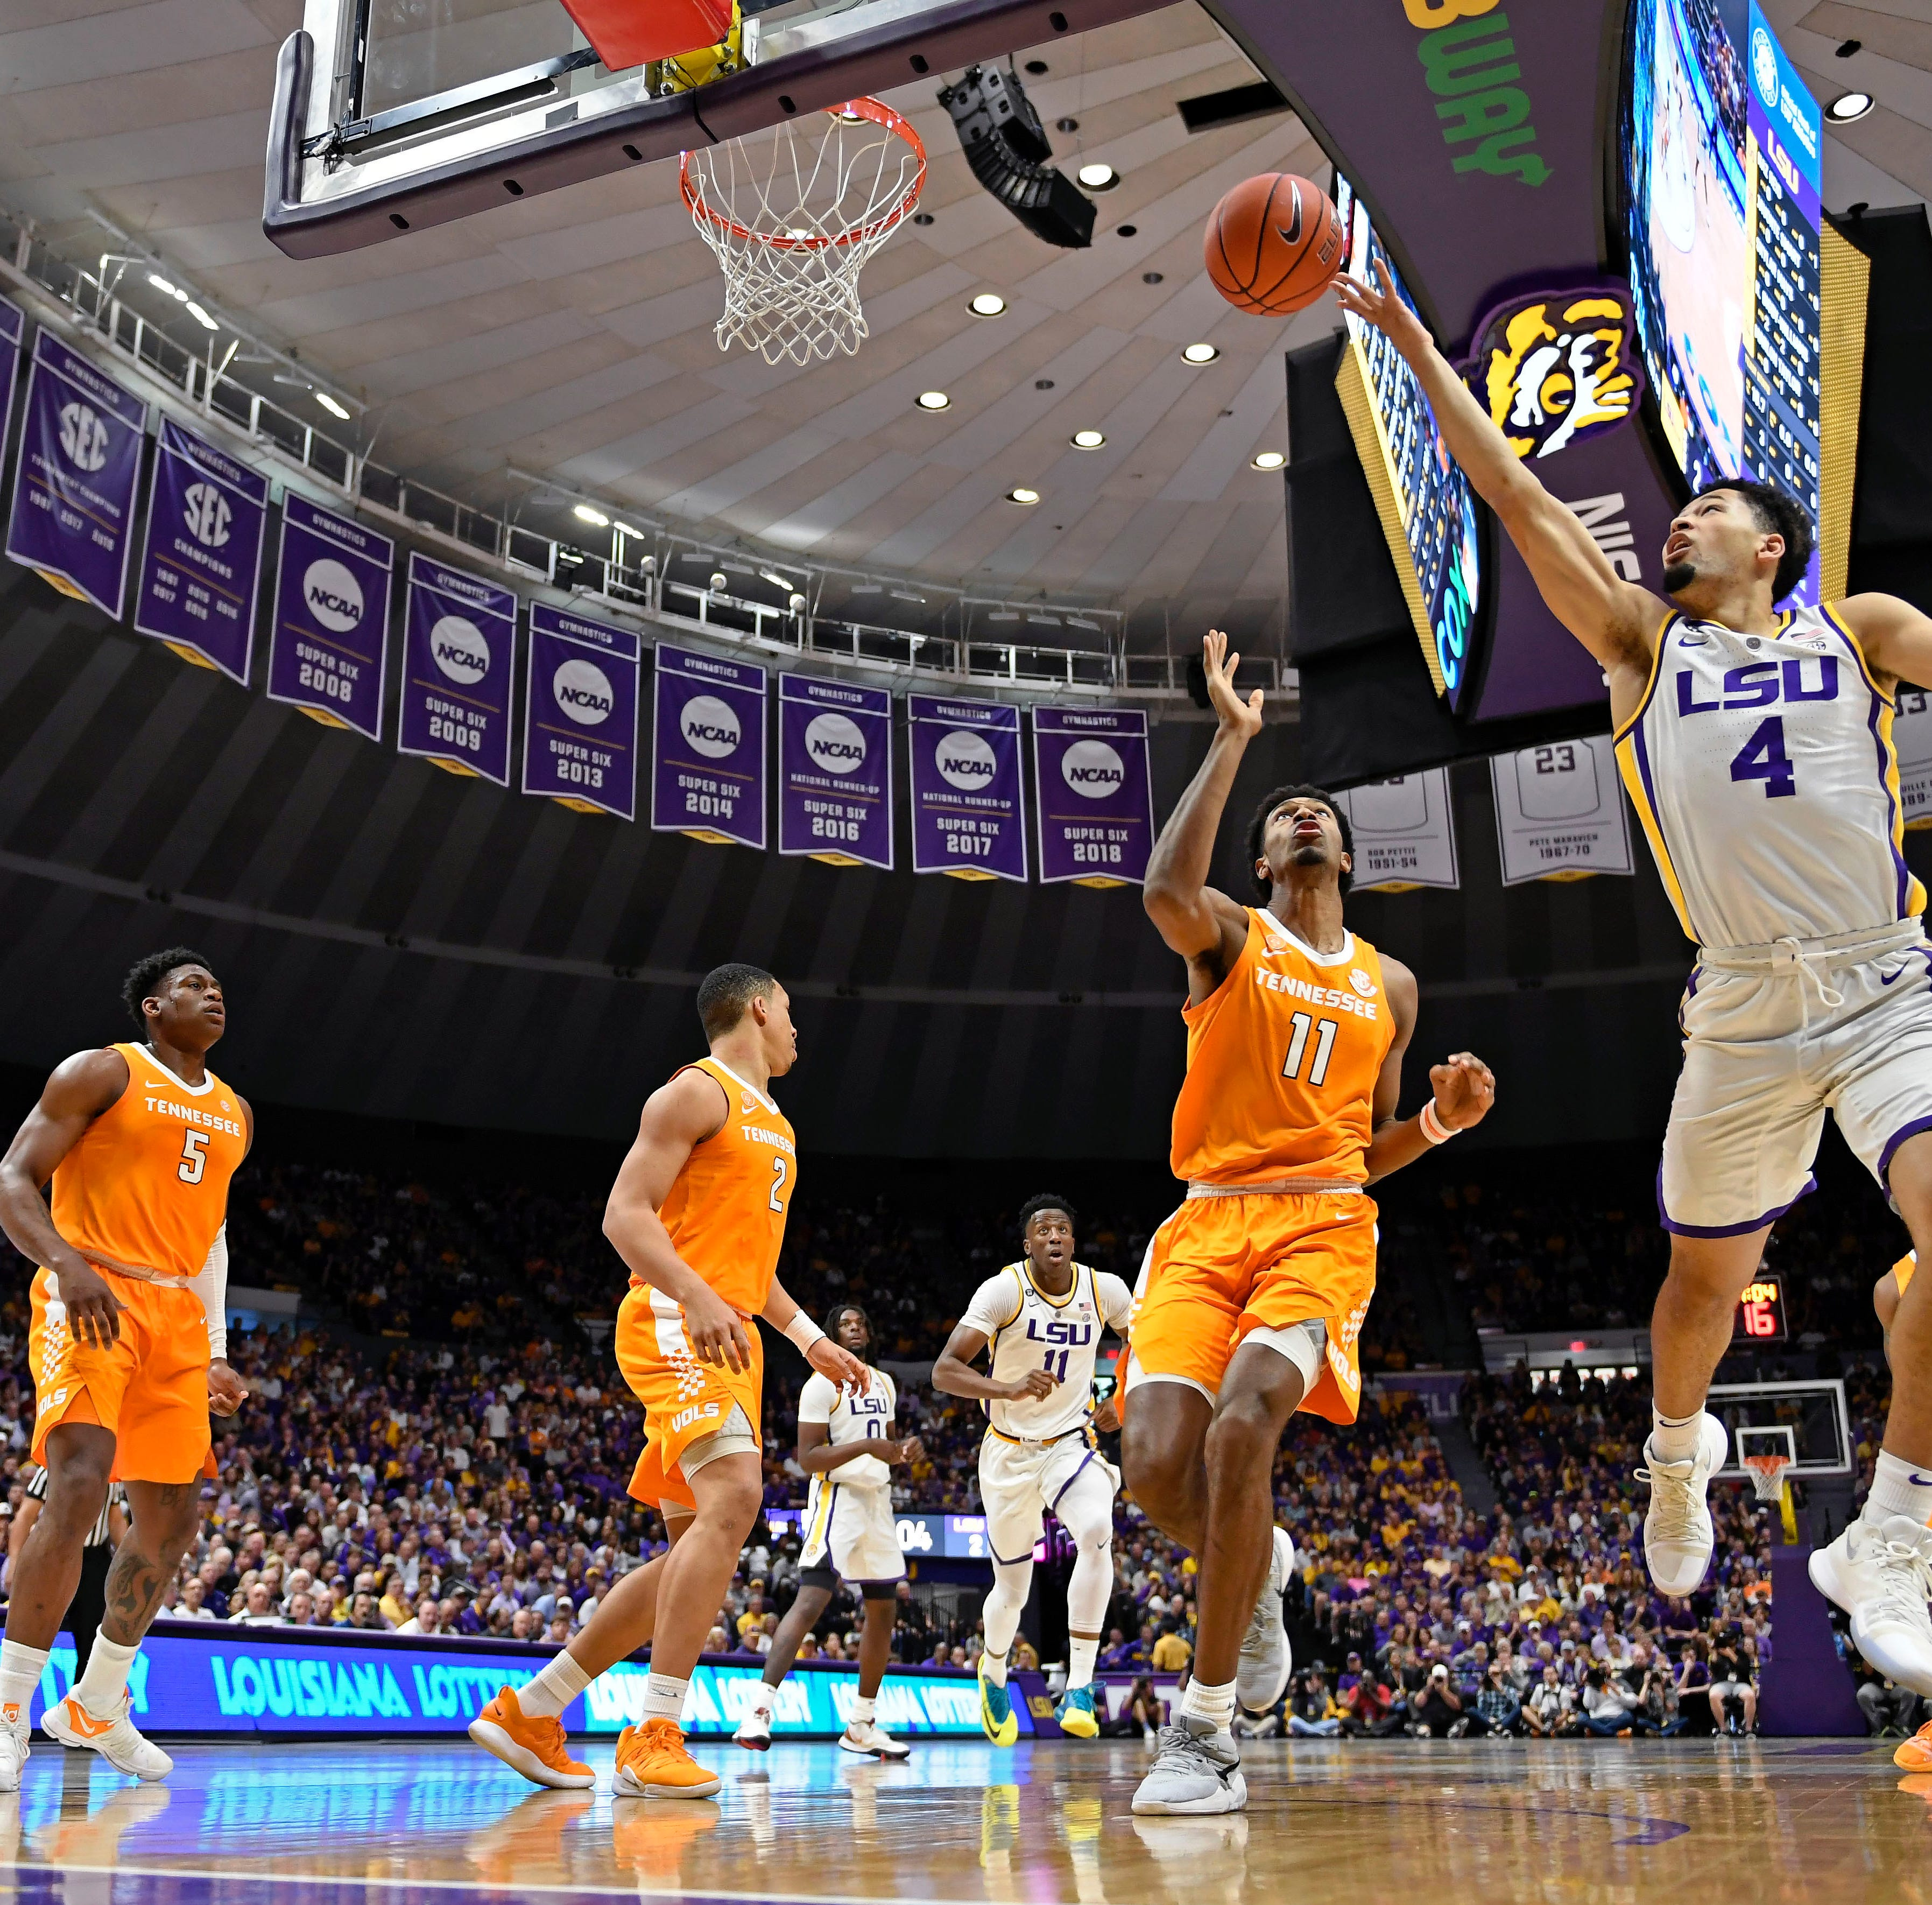 LSU vs. Tennessee Vols basketball: Social media reacts to Tigers' overtime win